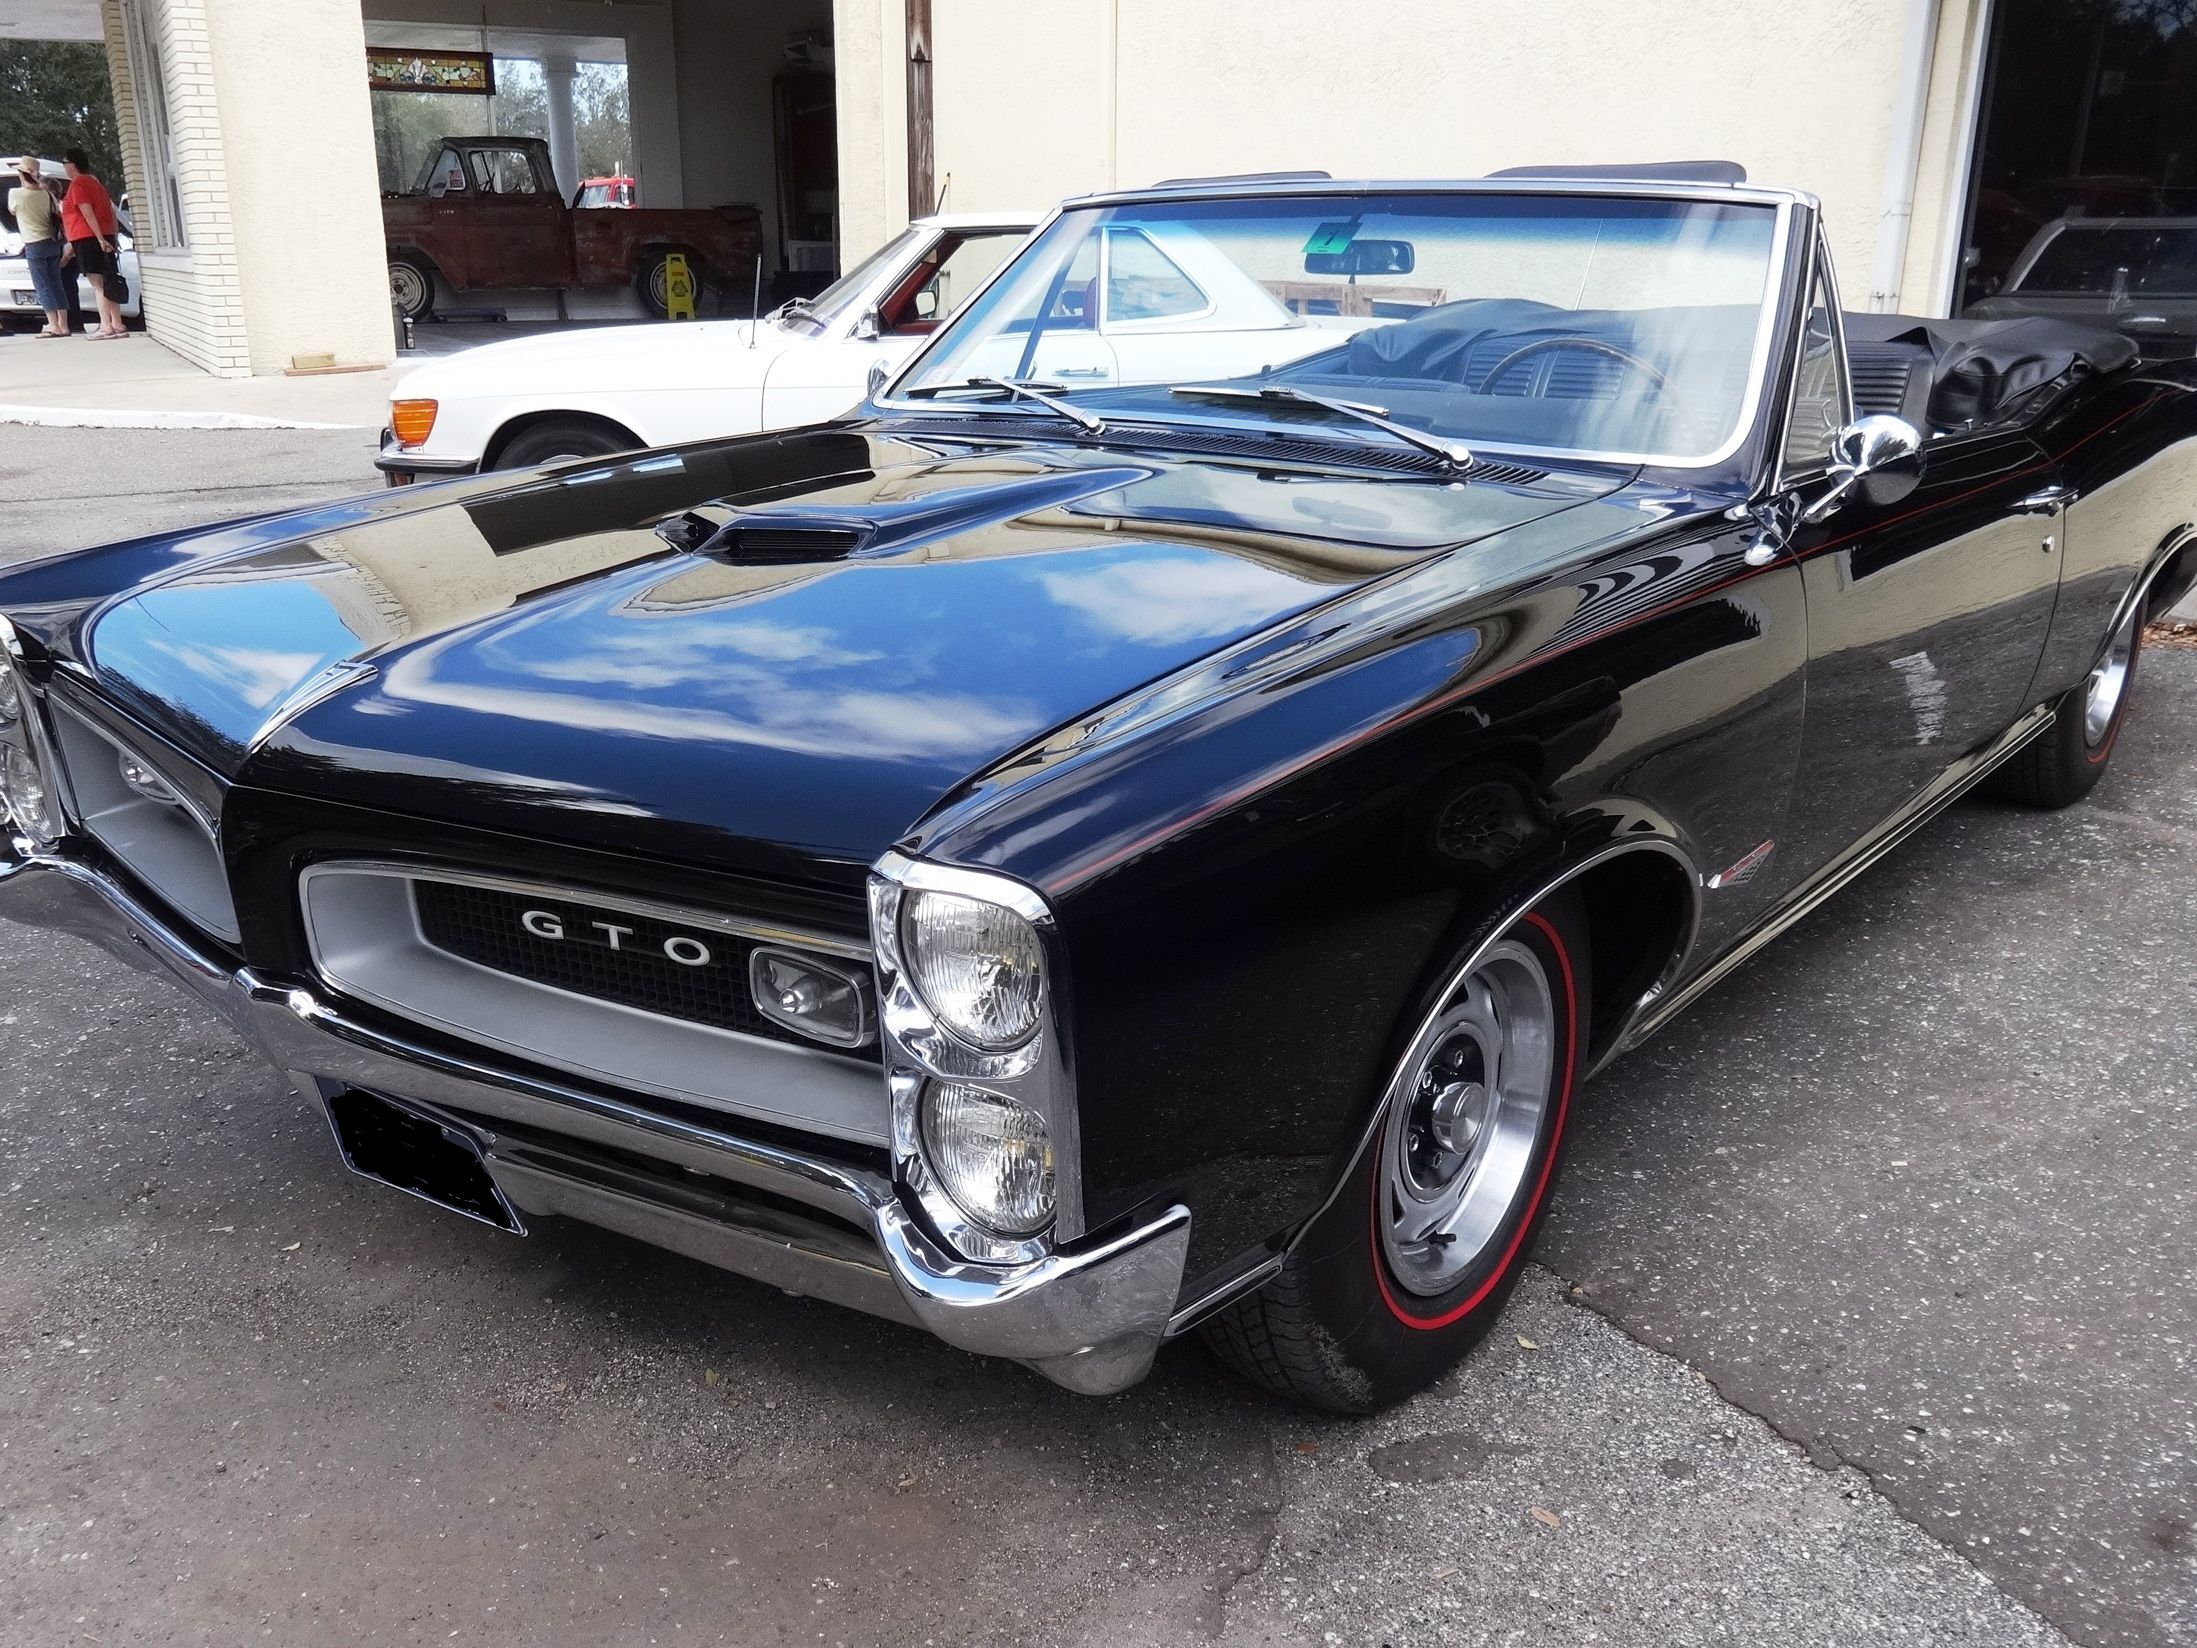 The Best Year For The Classic Pontiac Gto